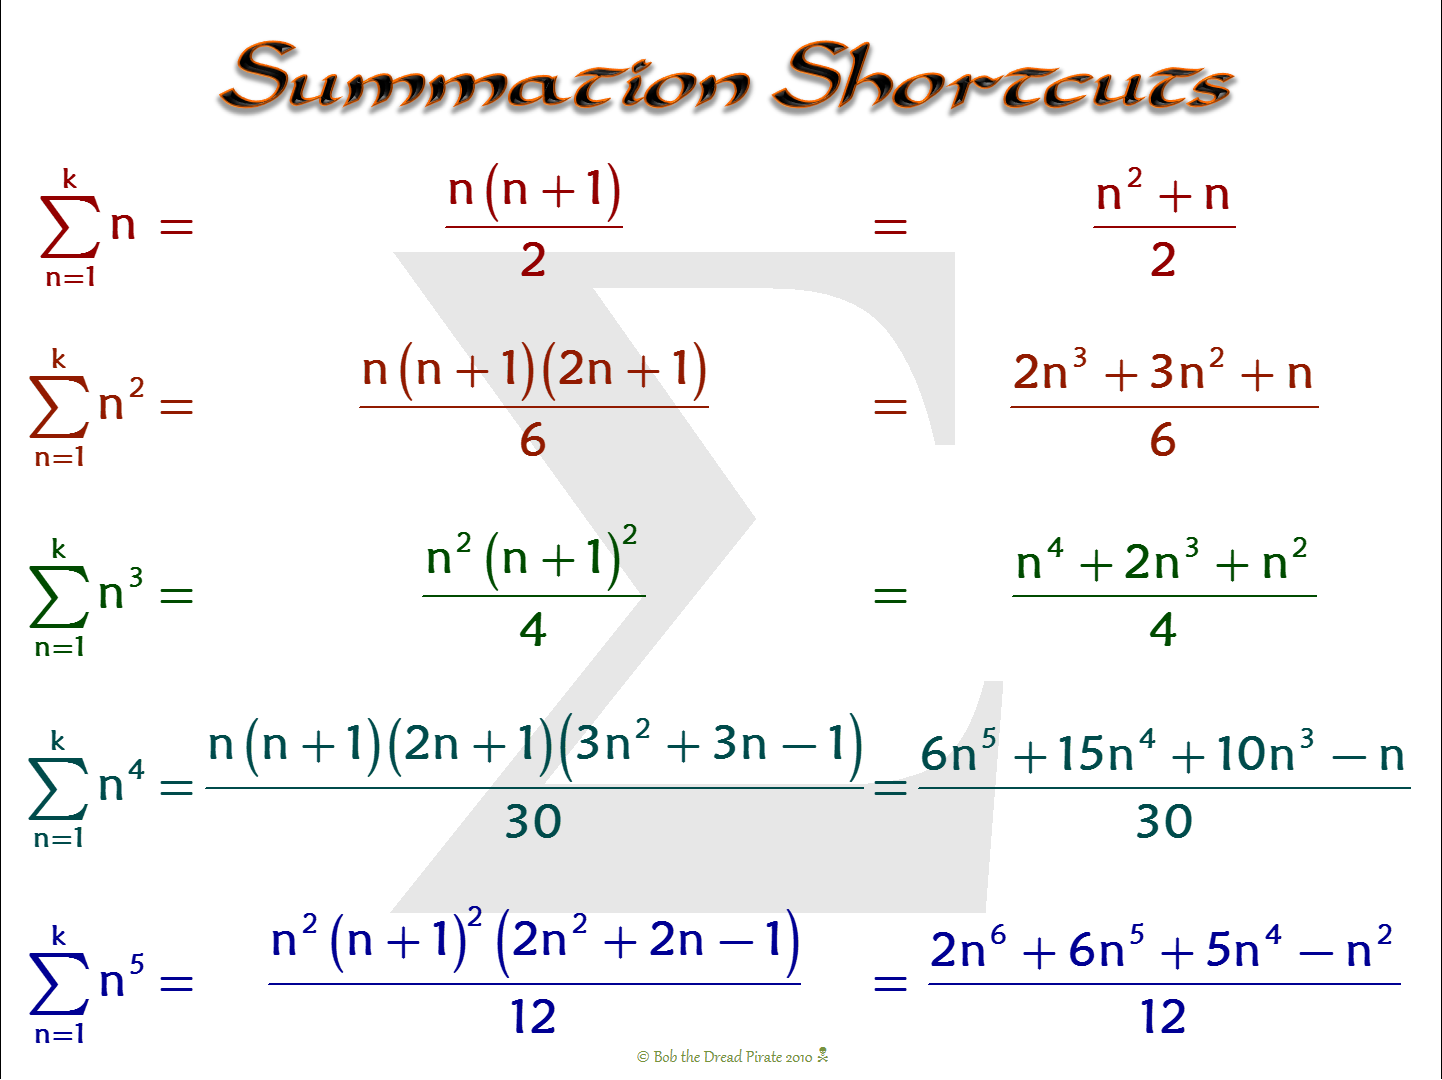 Summation Shortcuts Often Used With Riemann Sums